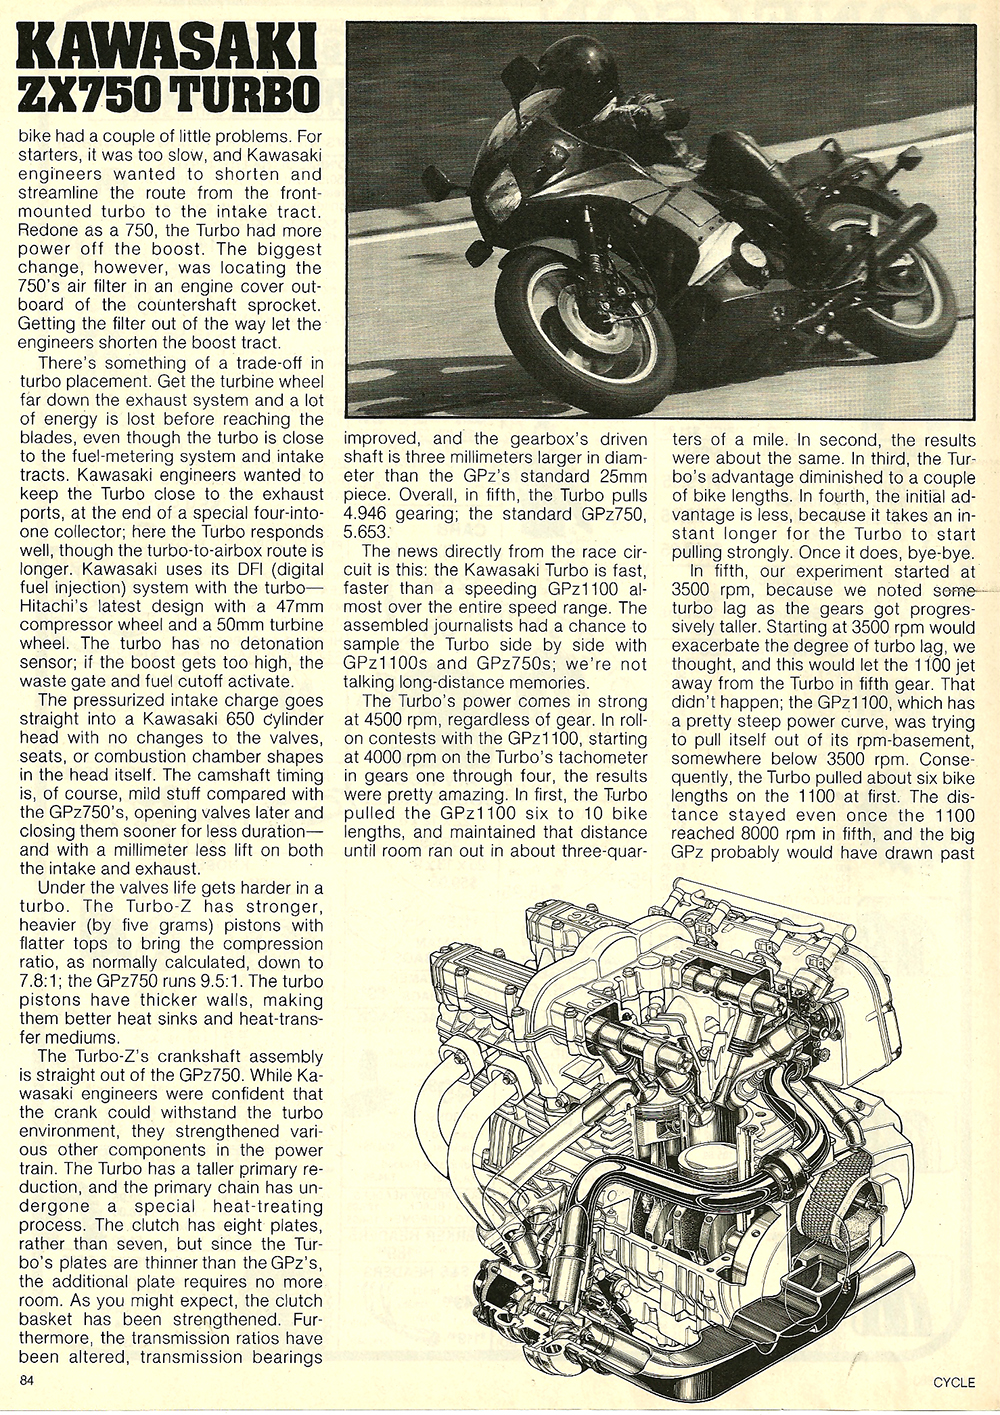 1983 Kawasaki ZX750 Turbo road test 3.jpg